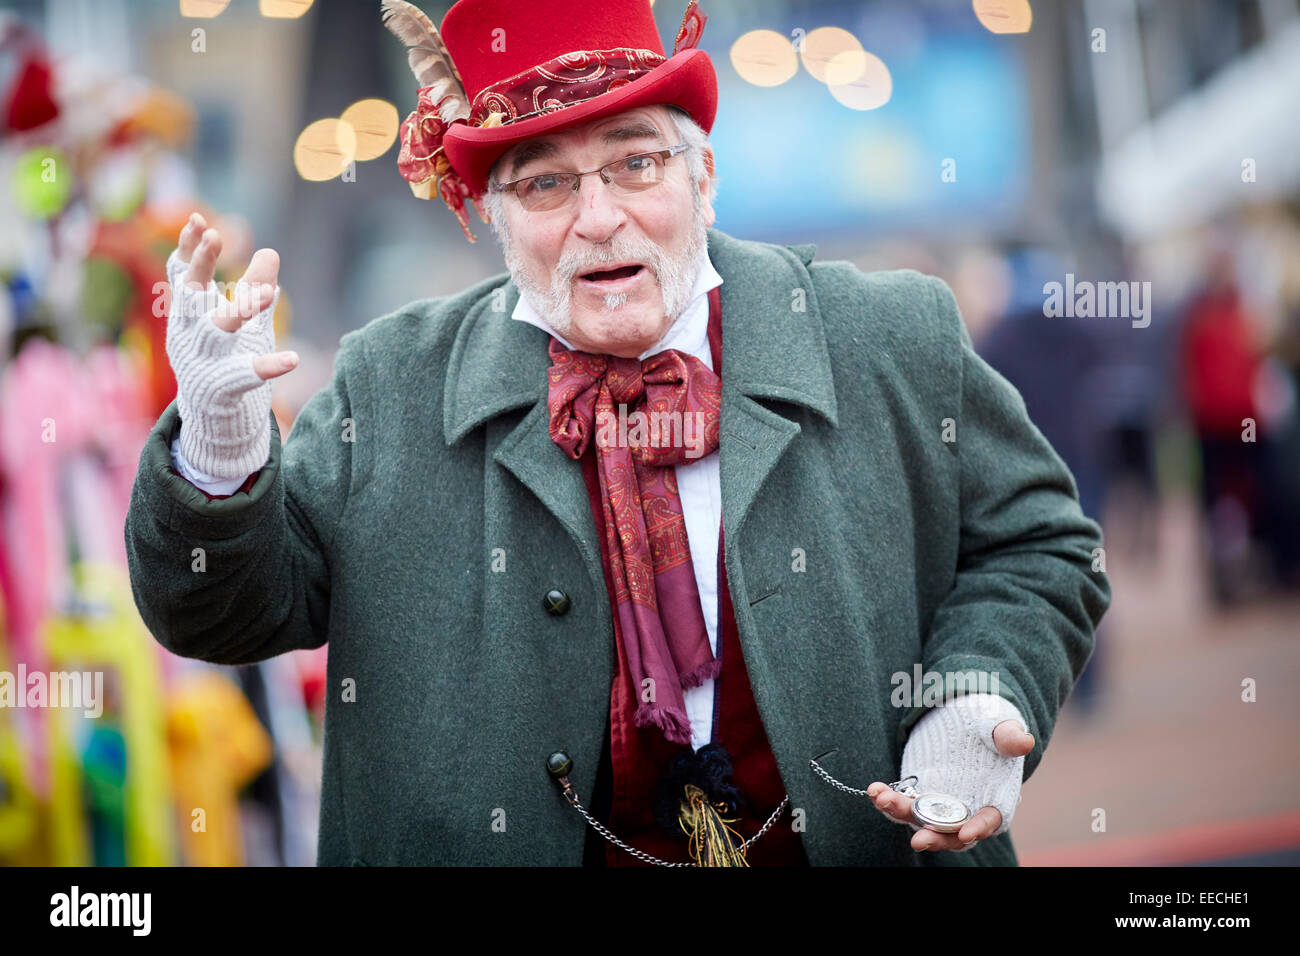 lowry market trader in Victorian dress costume - Stock Image